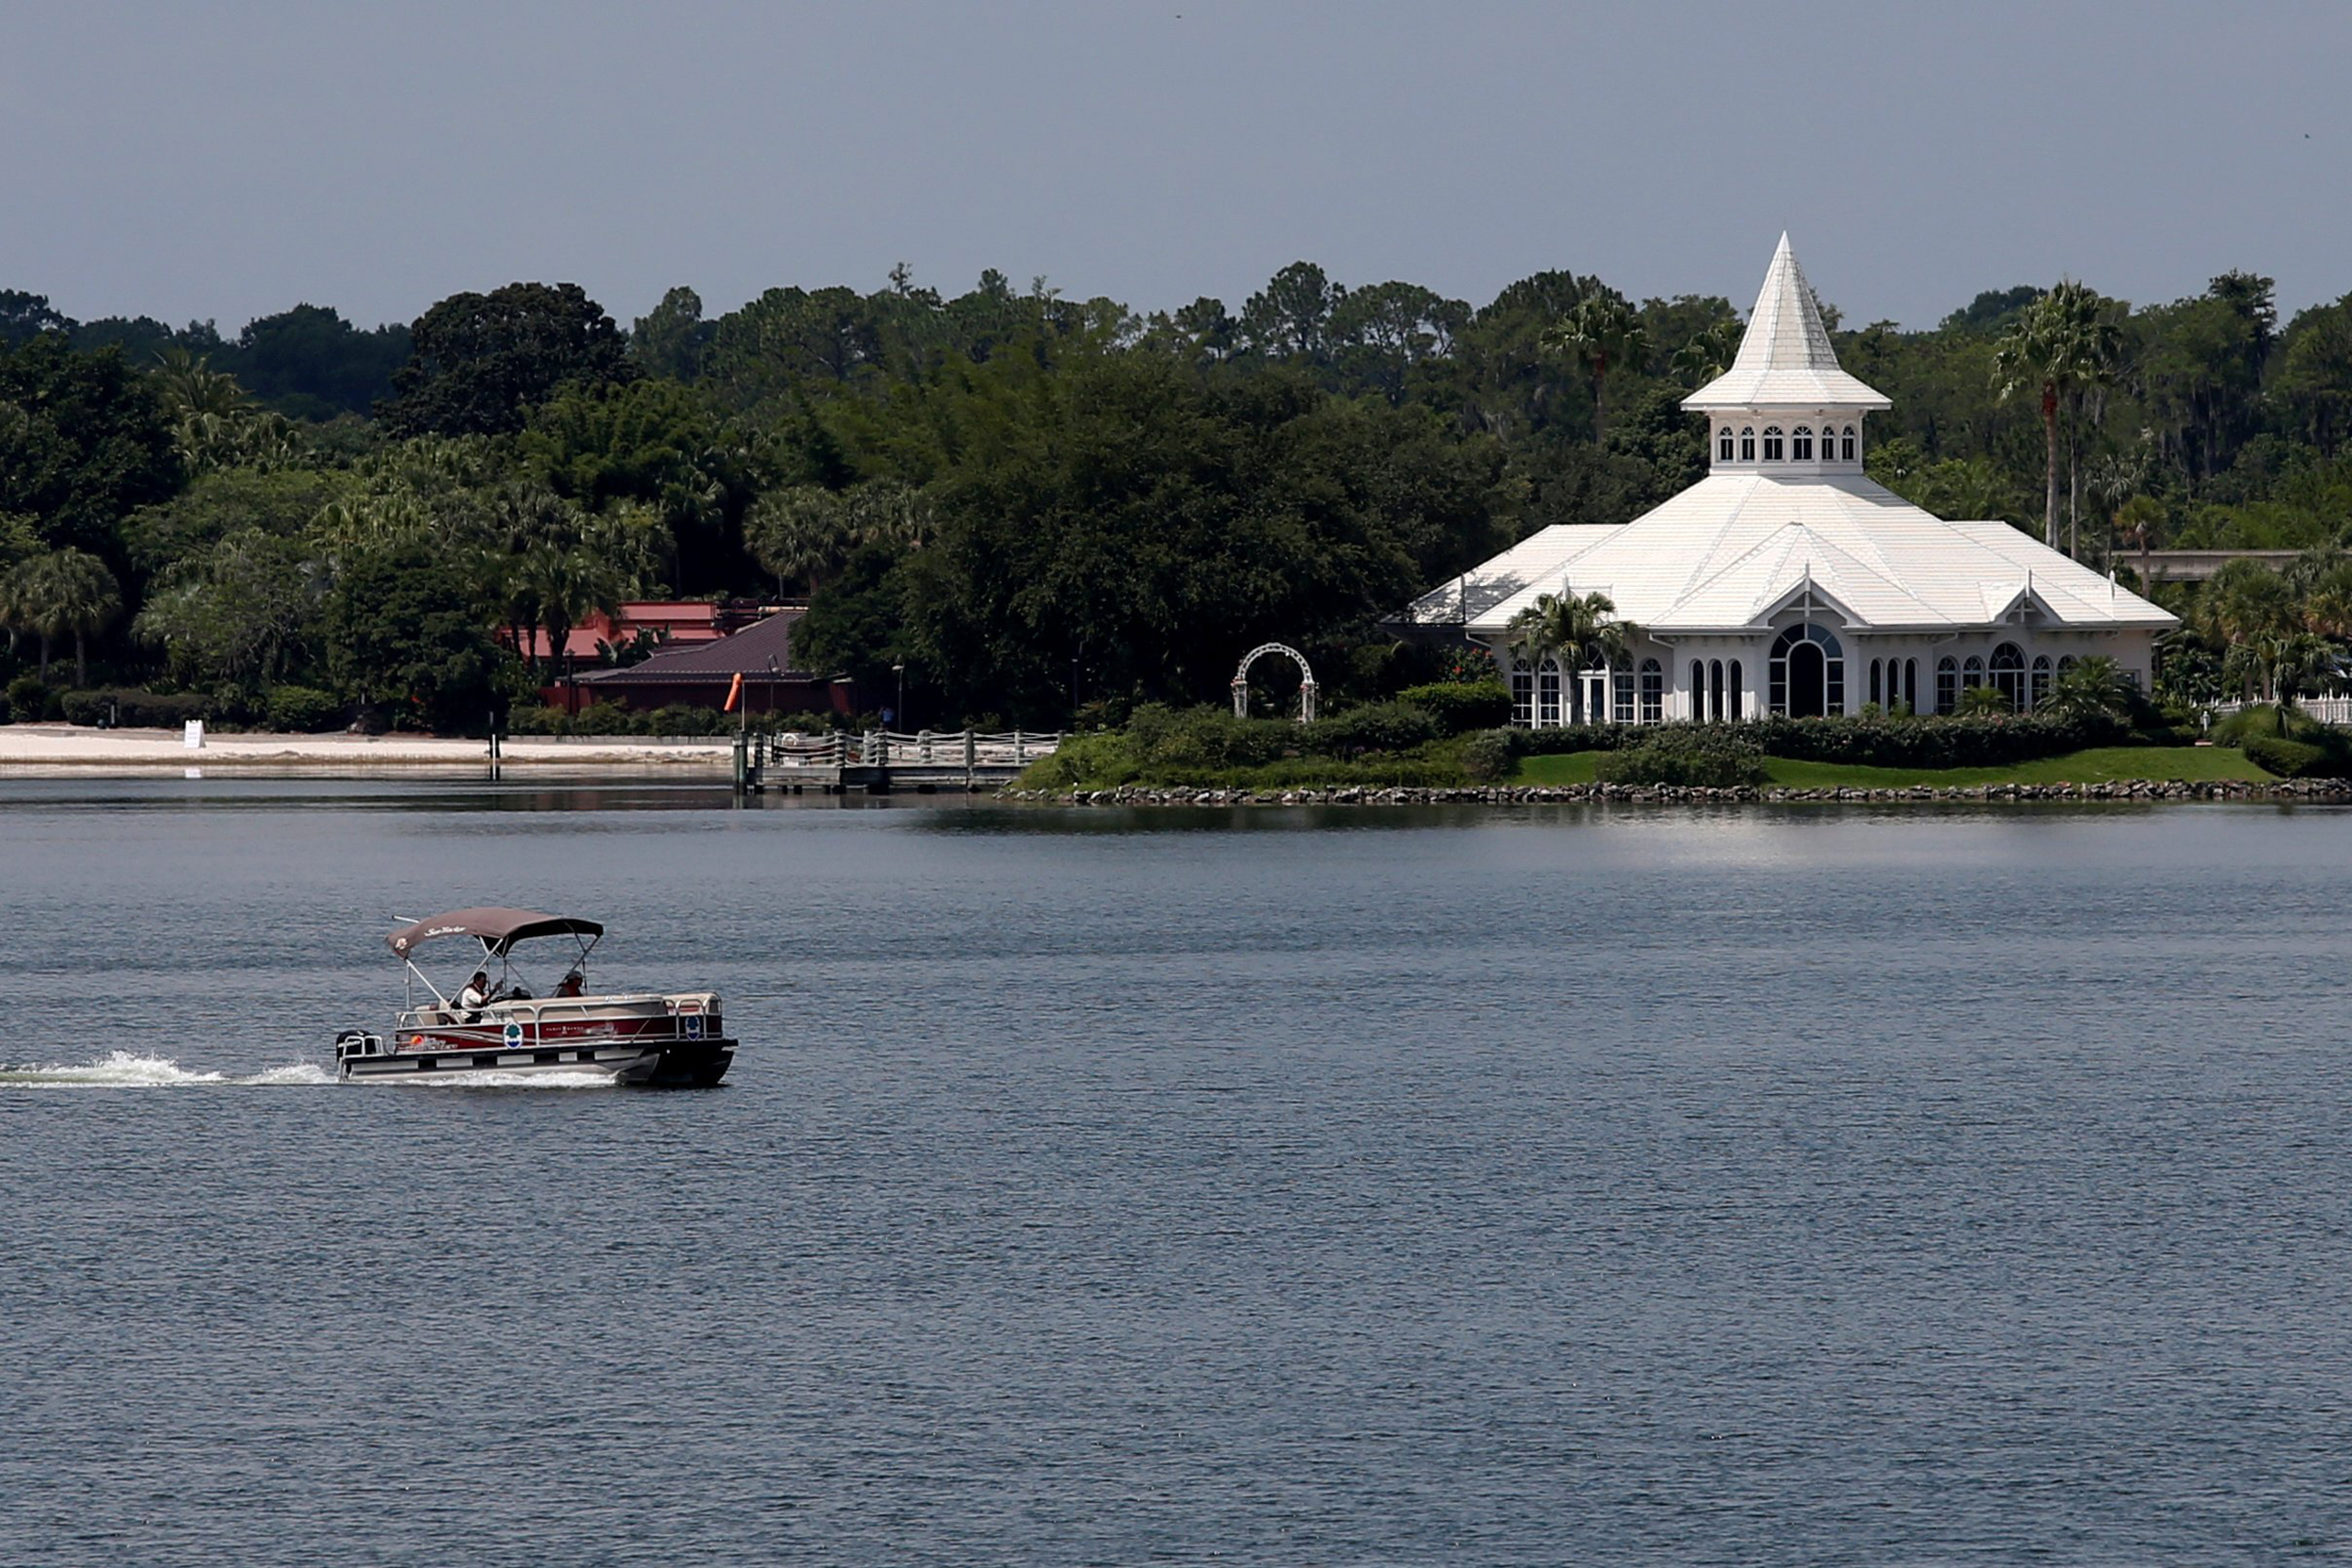 A search boat is seen passing Disney's Fairy Tale Weddings Chapel in the Seven Seas Lagoon, located near the Grand Floridian, at the Walt Disney World resort in Orlando, Fla., on June 15, 2016.